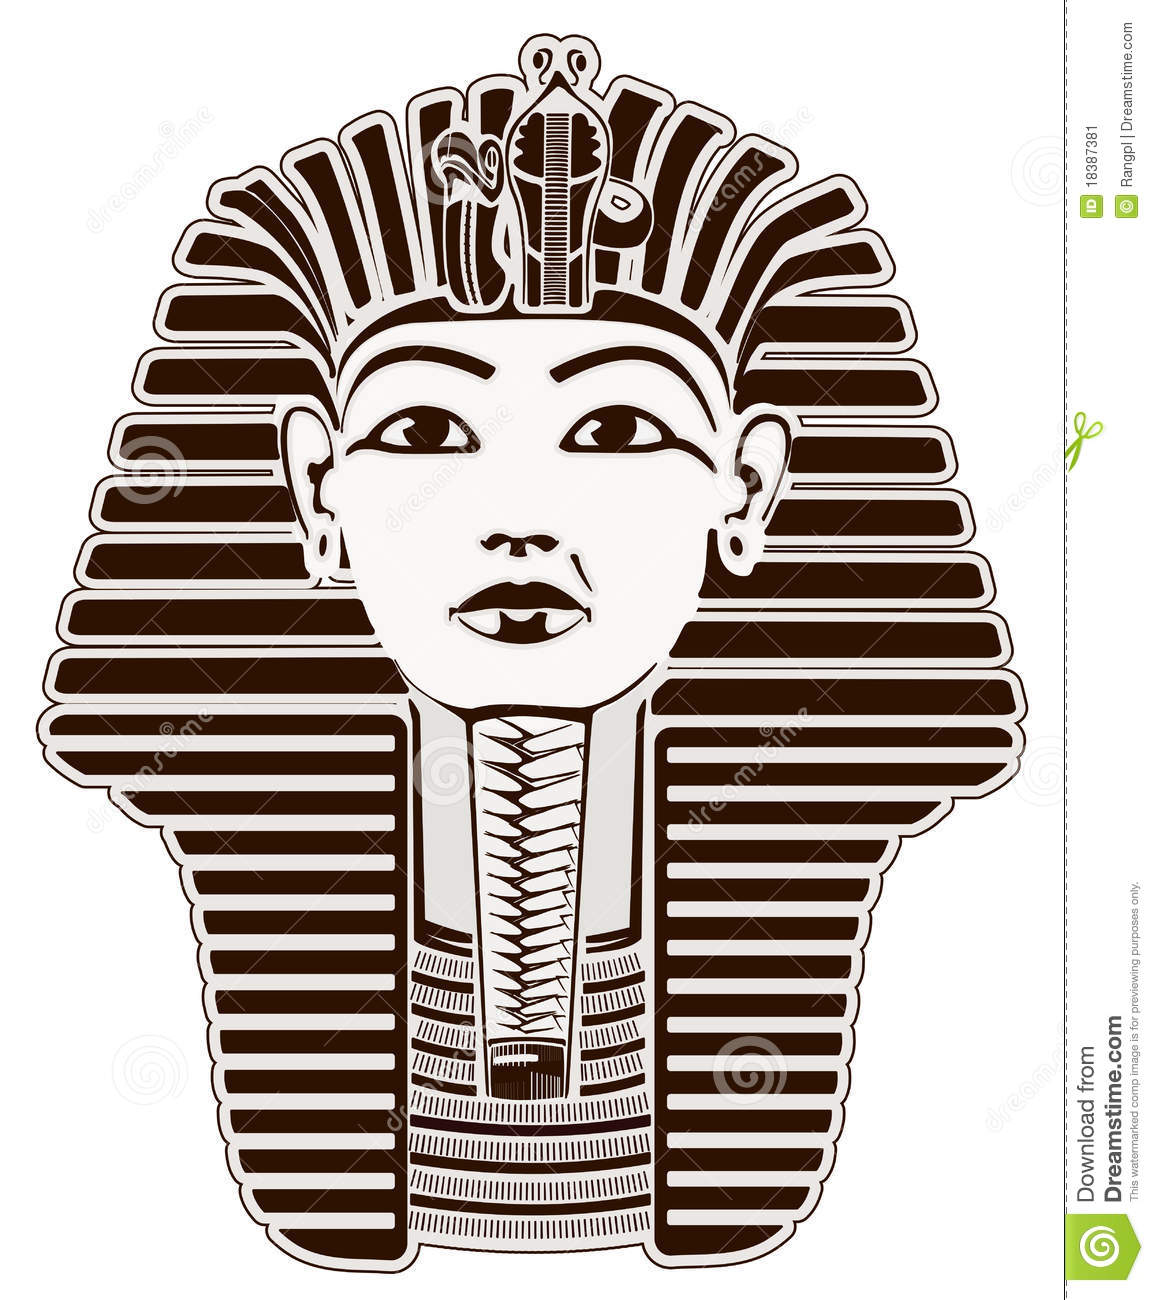 King Tut Designs tutankhamun stock image - image: 18387381